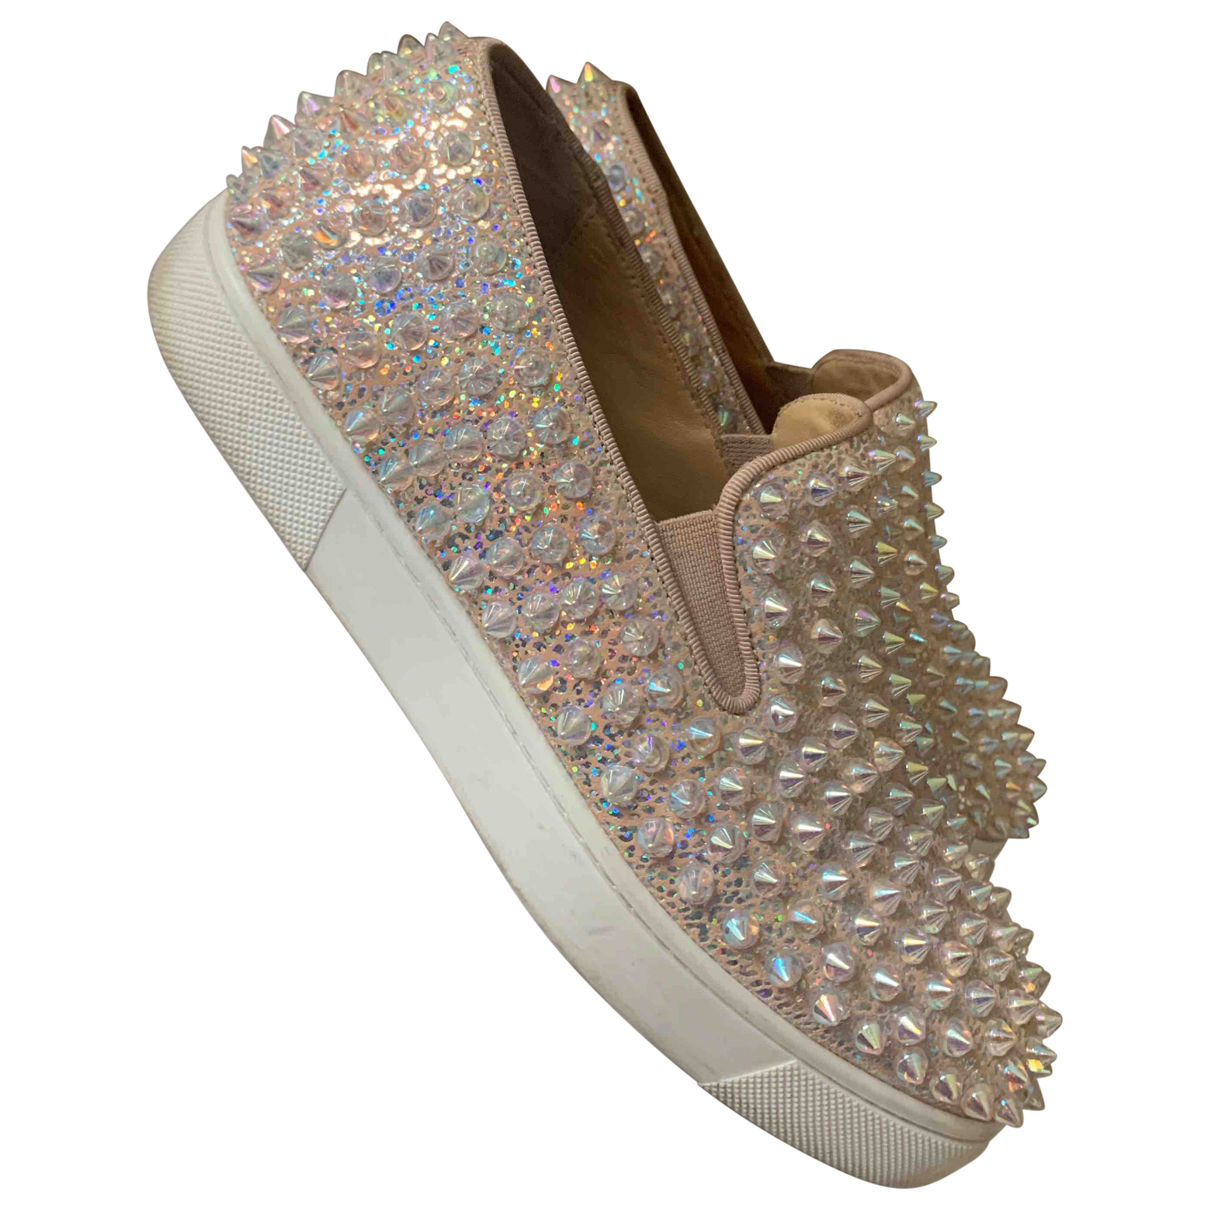 Christian Louboutin Roller Boat Multicolour Glitter Trainers for Women 36 EU